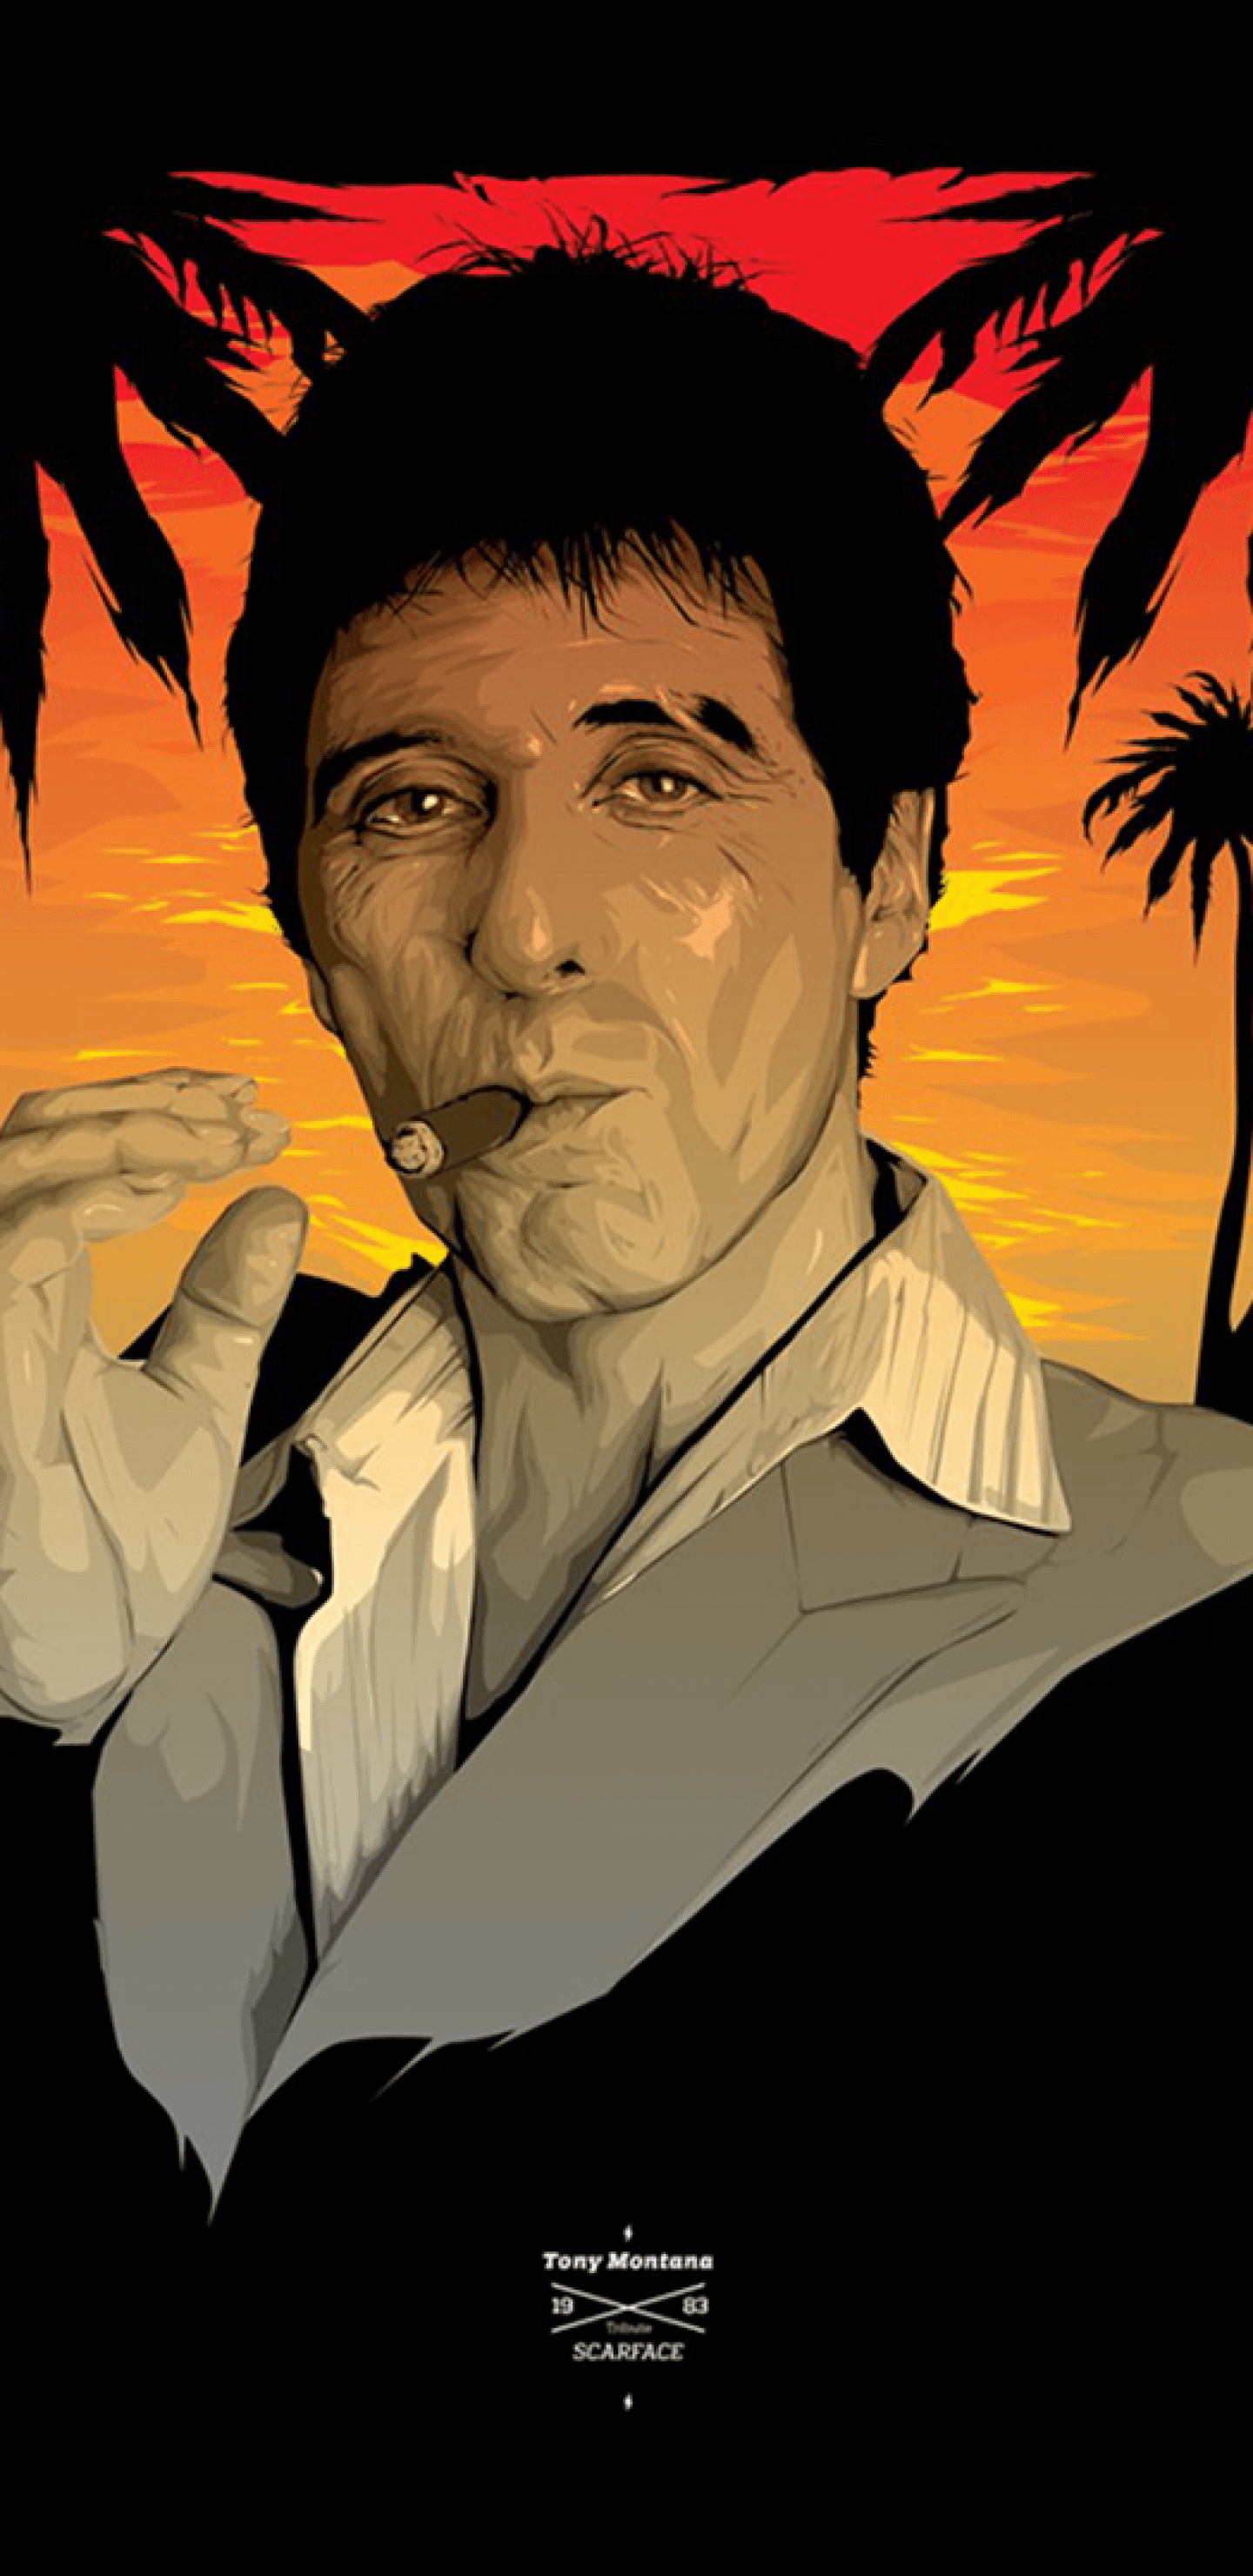 1440x2960 Download 1440x2960 Scarface, Tony Montana Wallpapers for Samsung ...